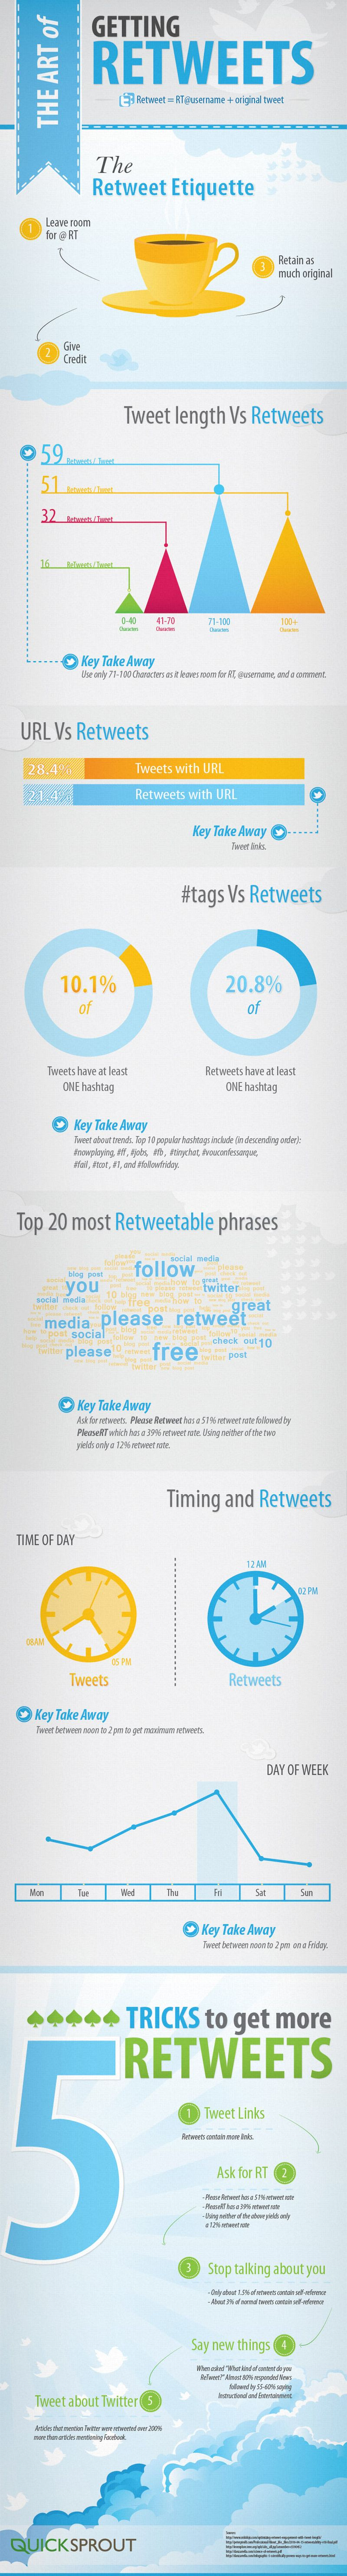 Gain More Retweets-Infographic